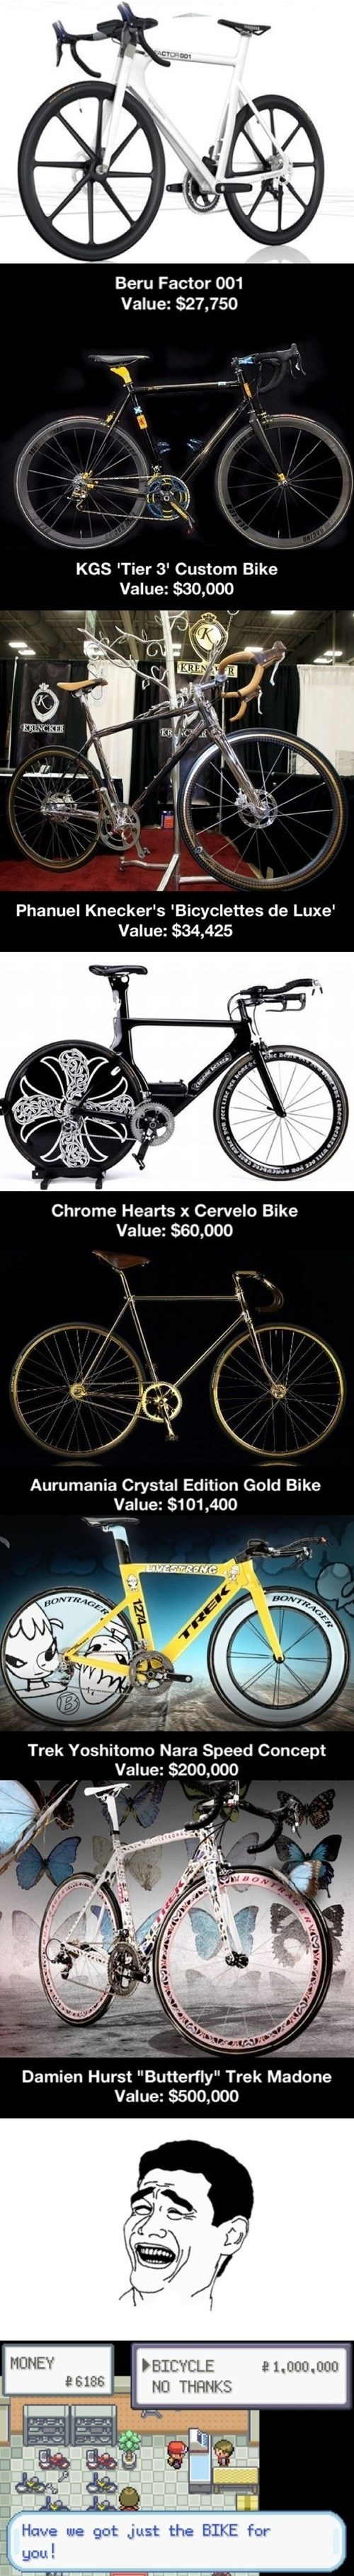 Pokémon bicycles bikes expensive - 7955278080